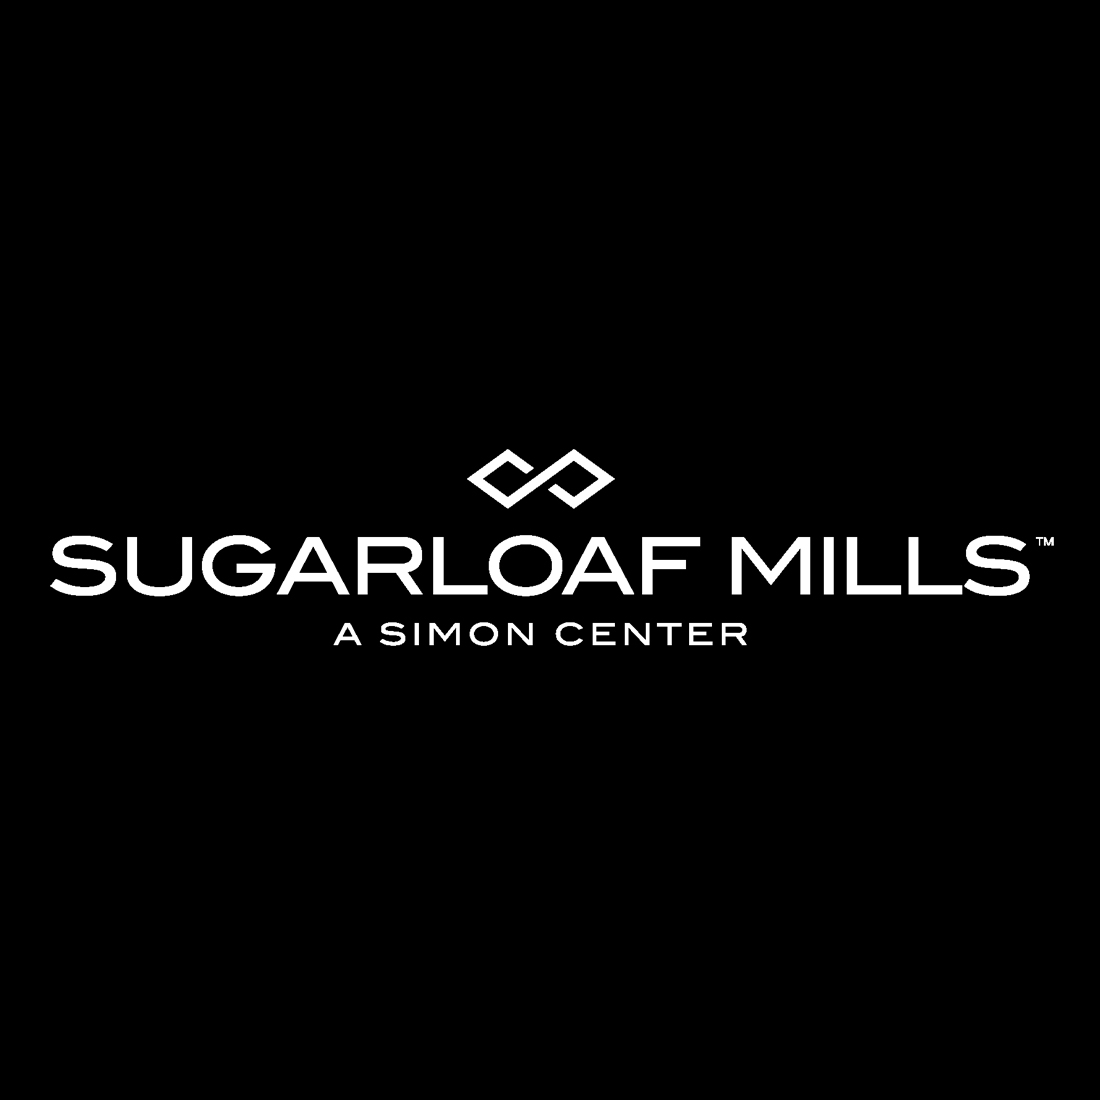 Sugarloaf Mills 5900 Sugarloaf Pkwy Lawrenceville Ga Shopping